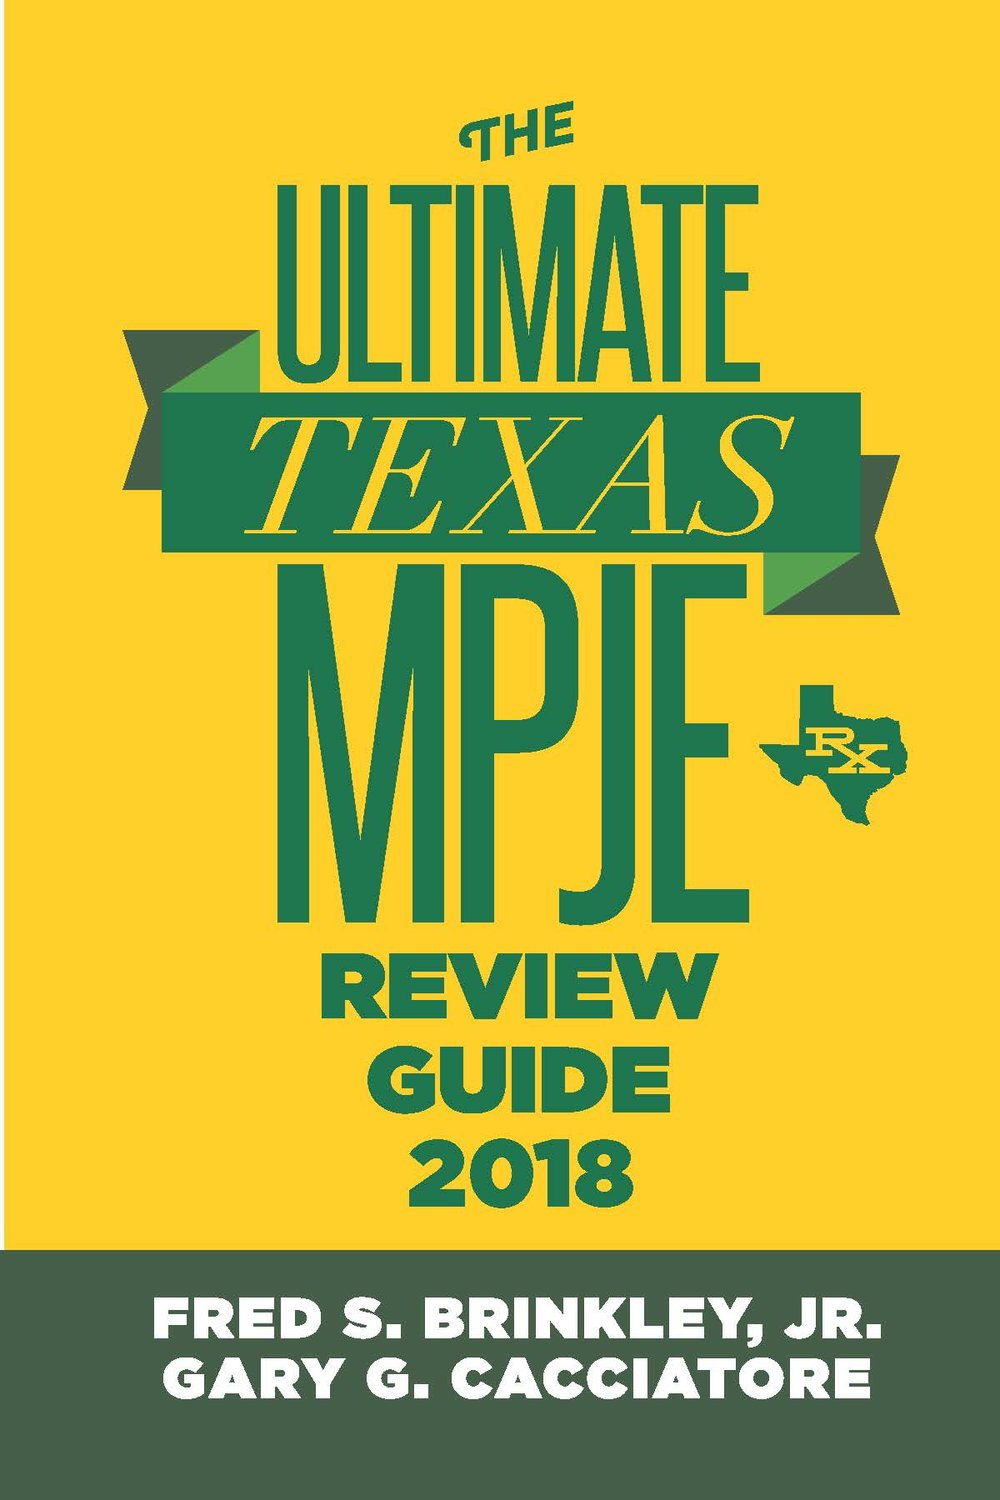 2018 review guide coverjpg